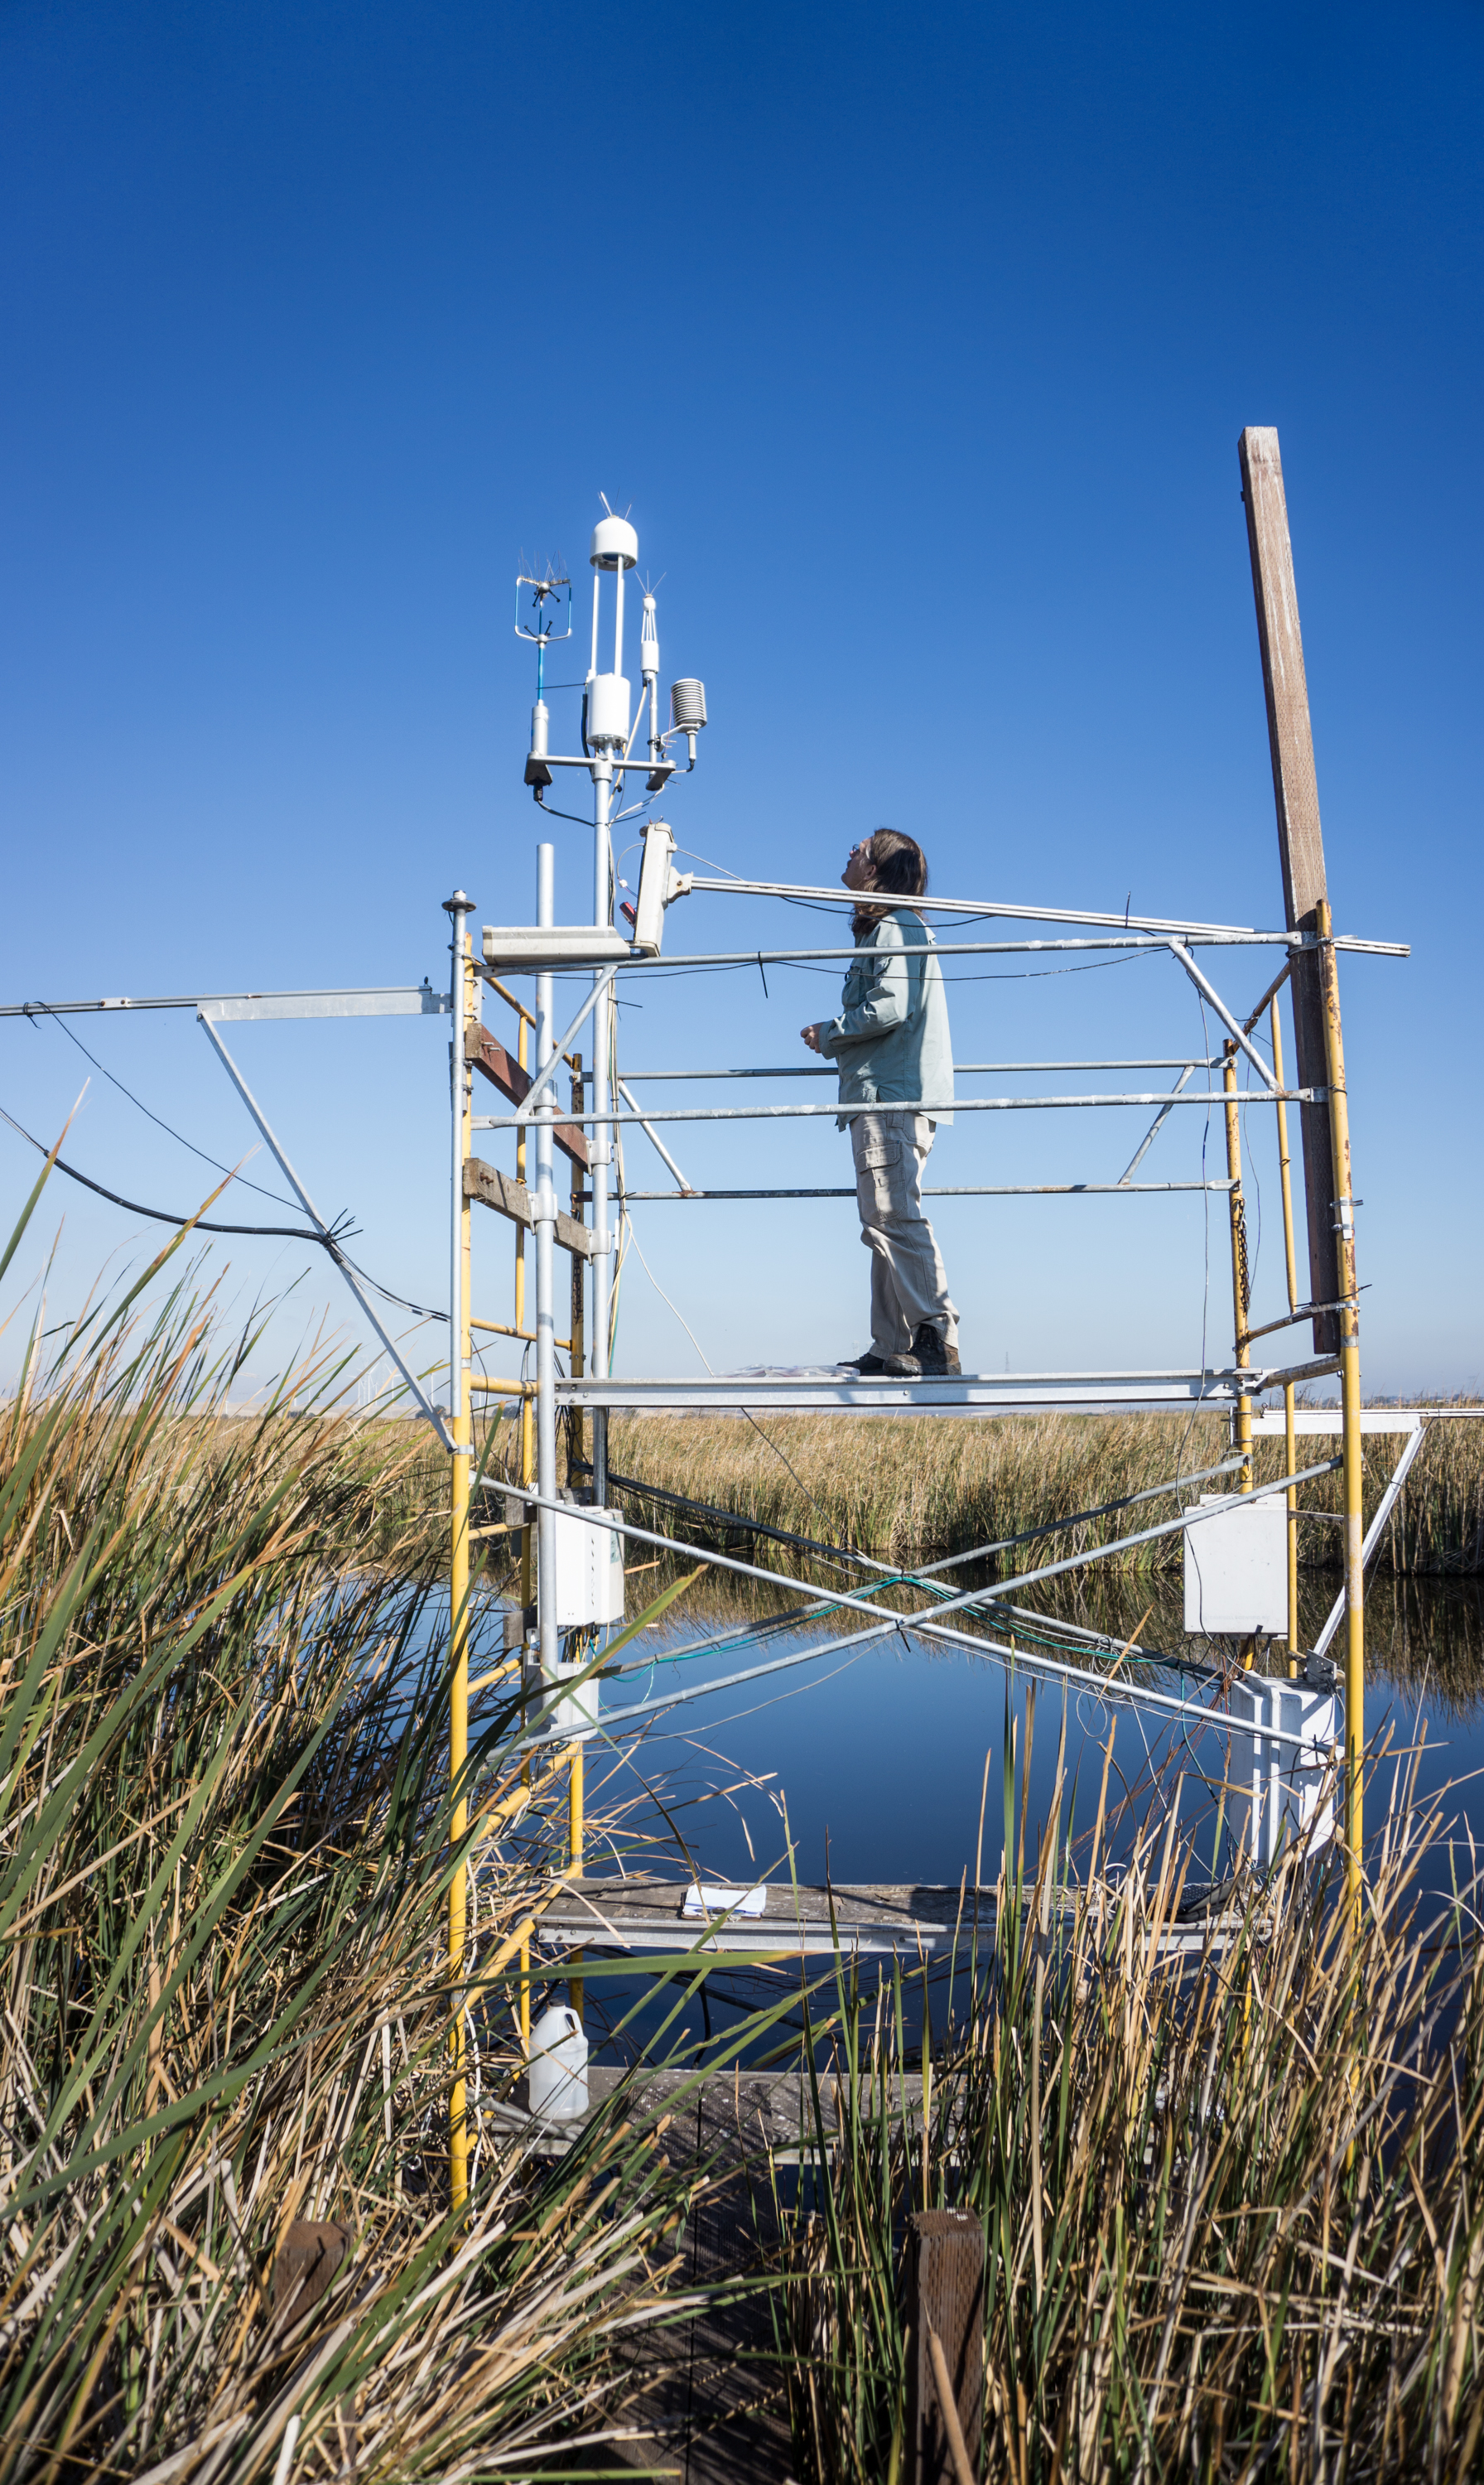 A scientific tower houses a gas analyzer, which detects greenhouse gas moving into and out of the Delta ecosystem. Credit: Kyle Hemes